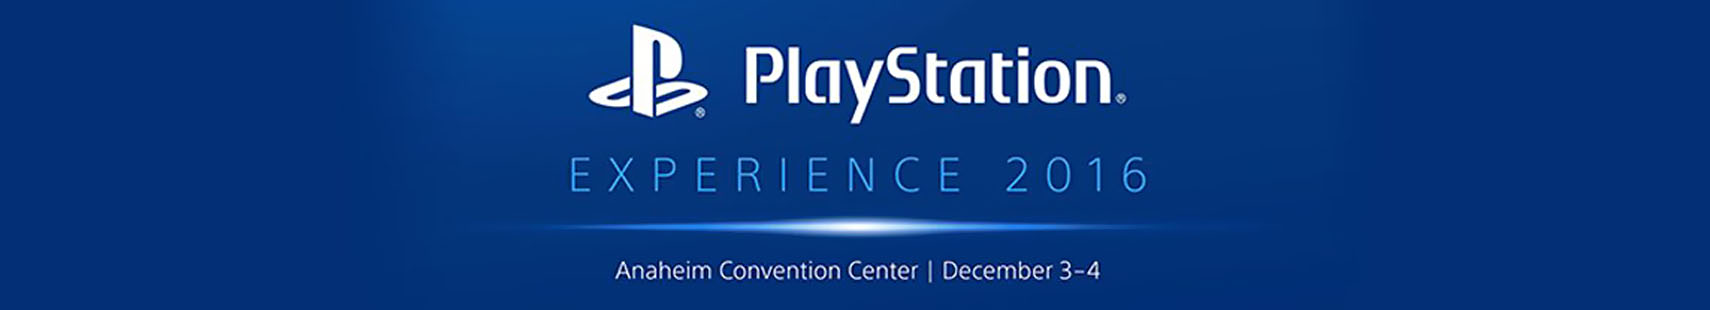 playstation-experience-2016-line